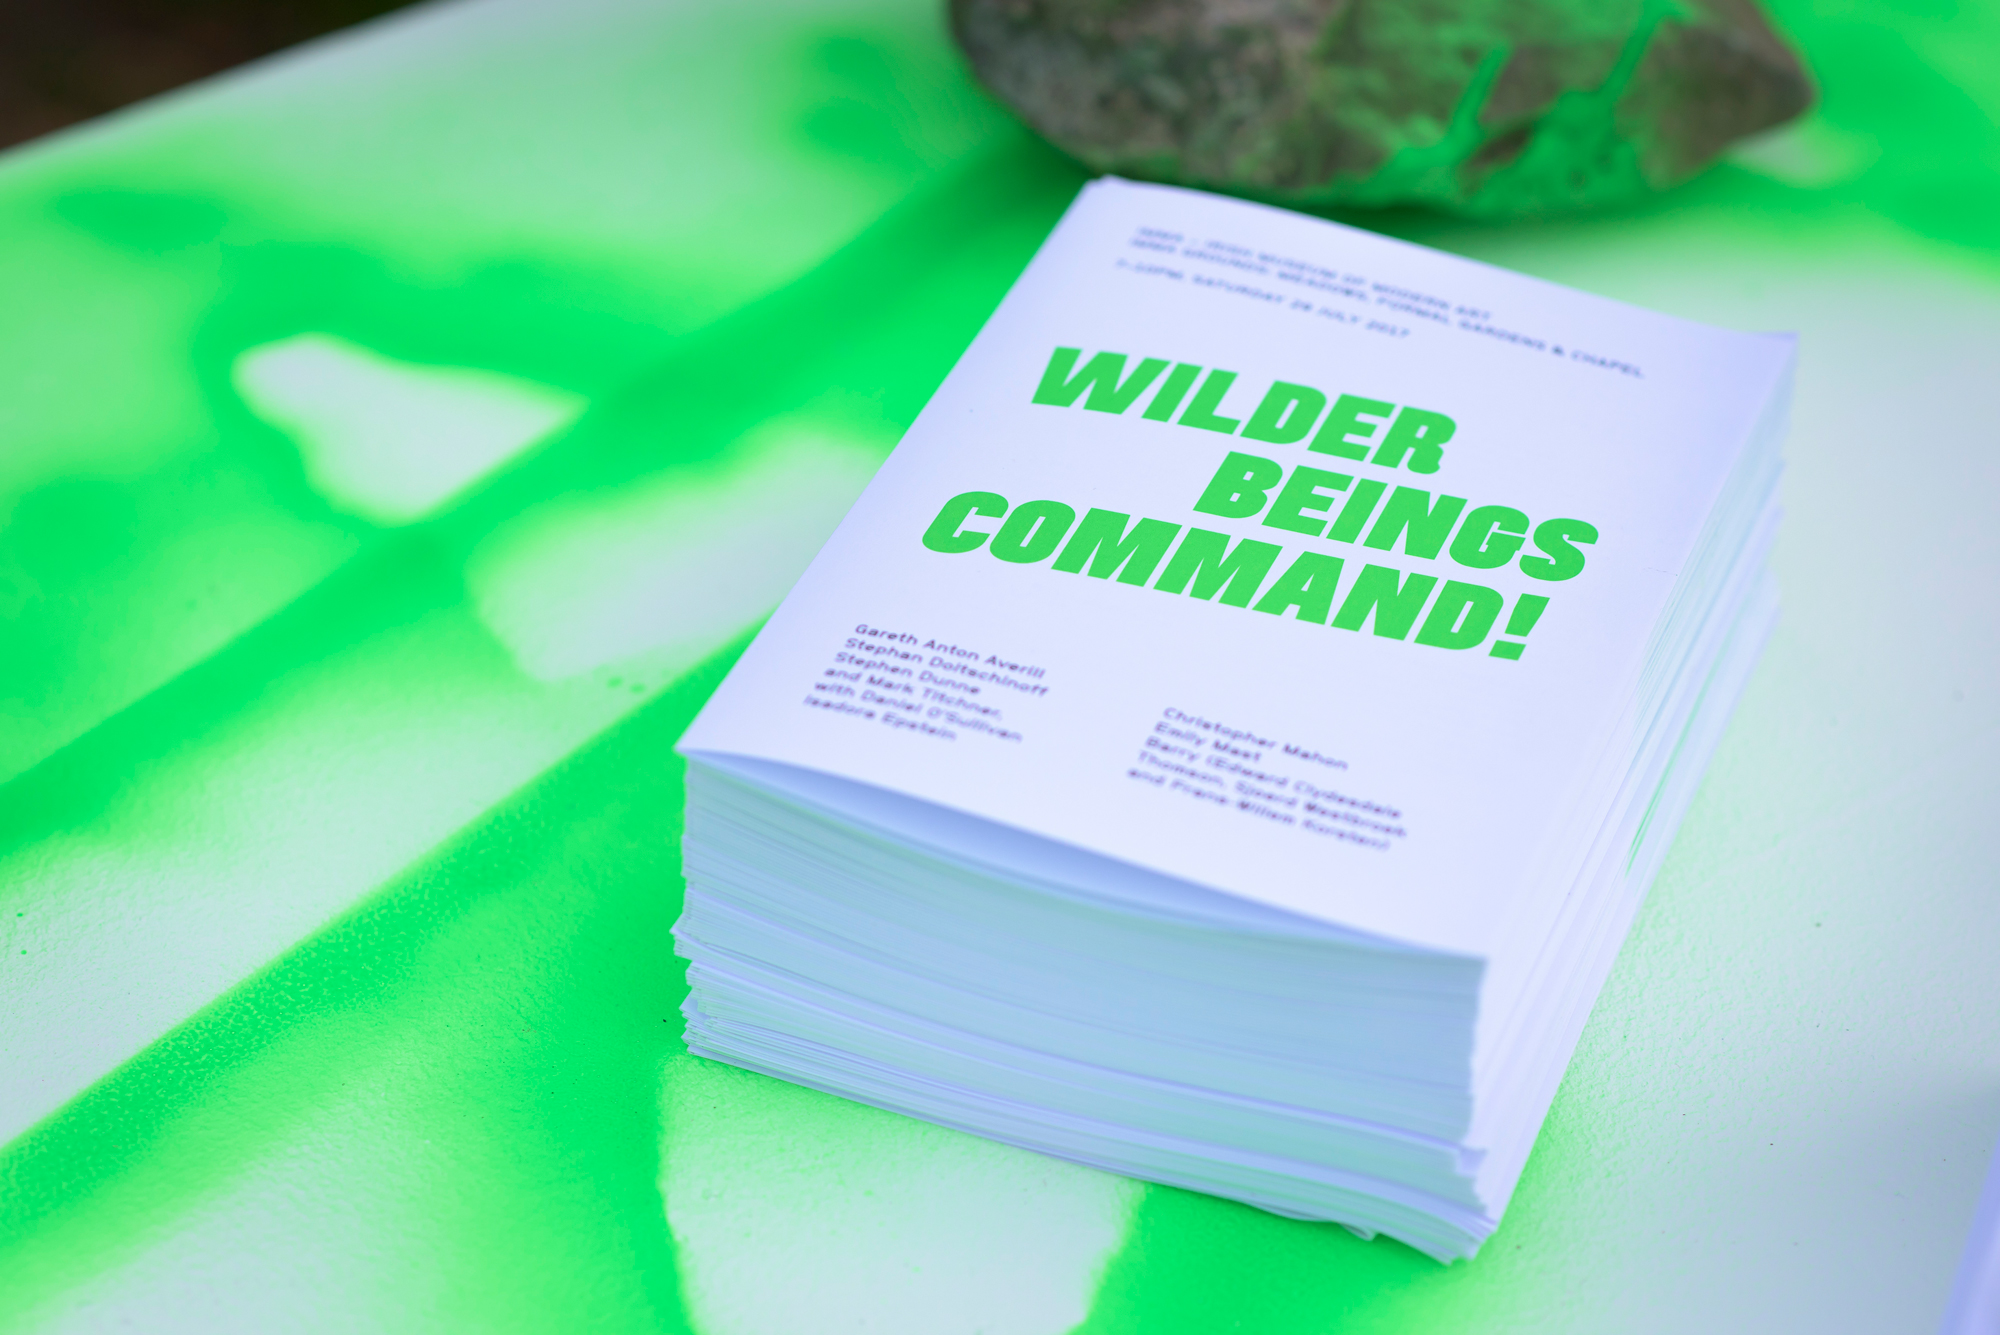 Cover image: Wilder Beings Command!